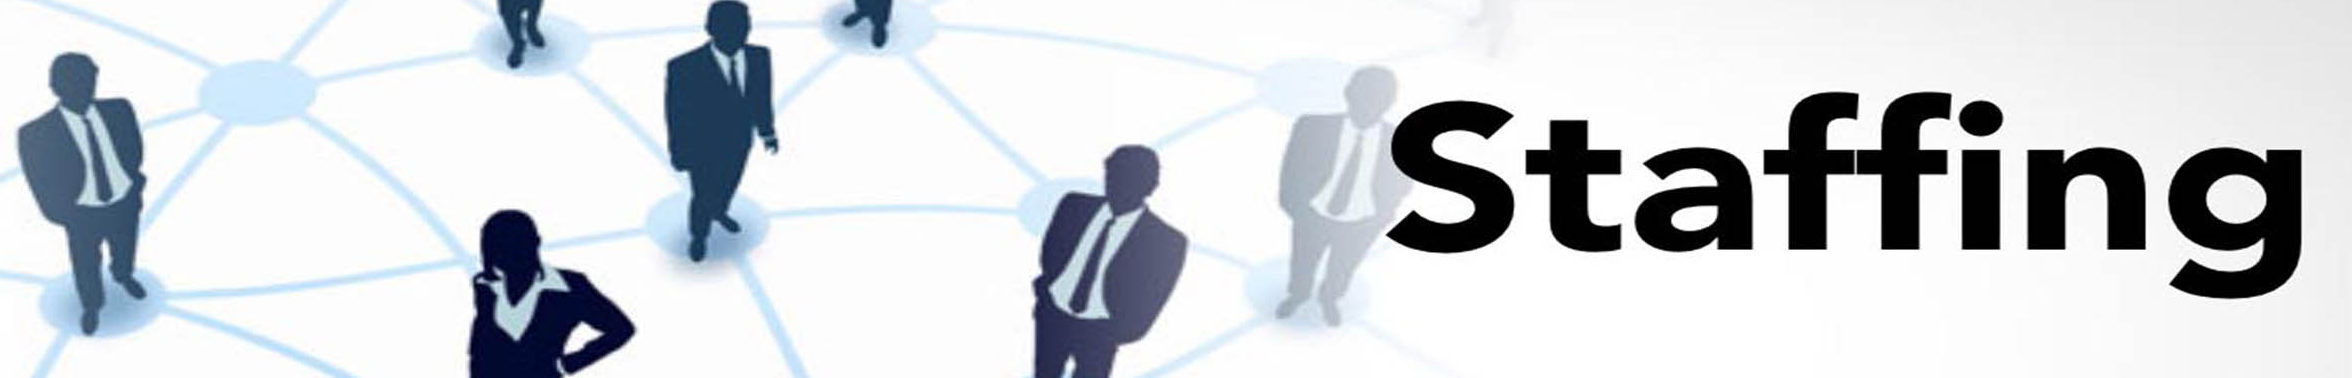 Permanent and Temporary Staffing Solutions